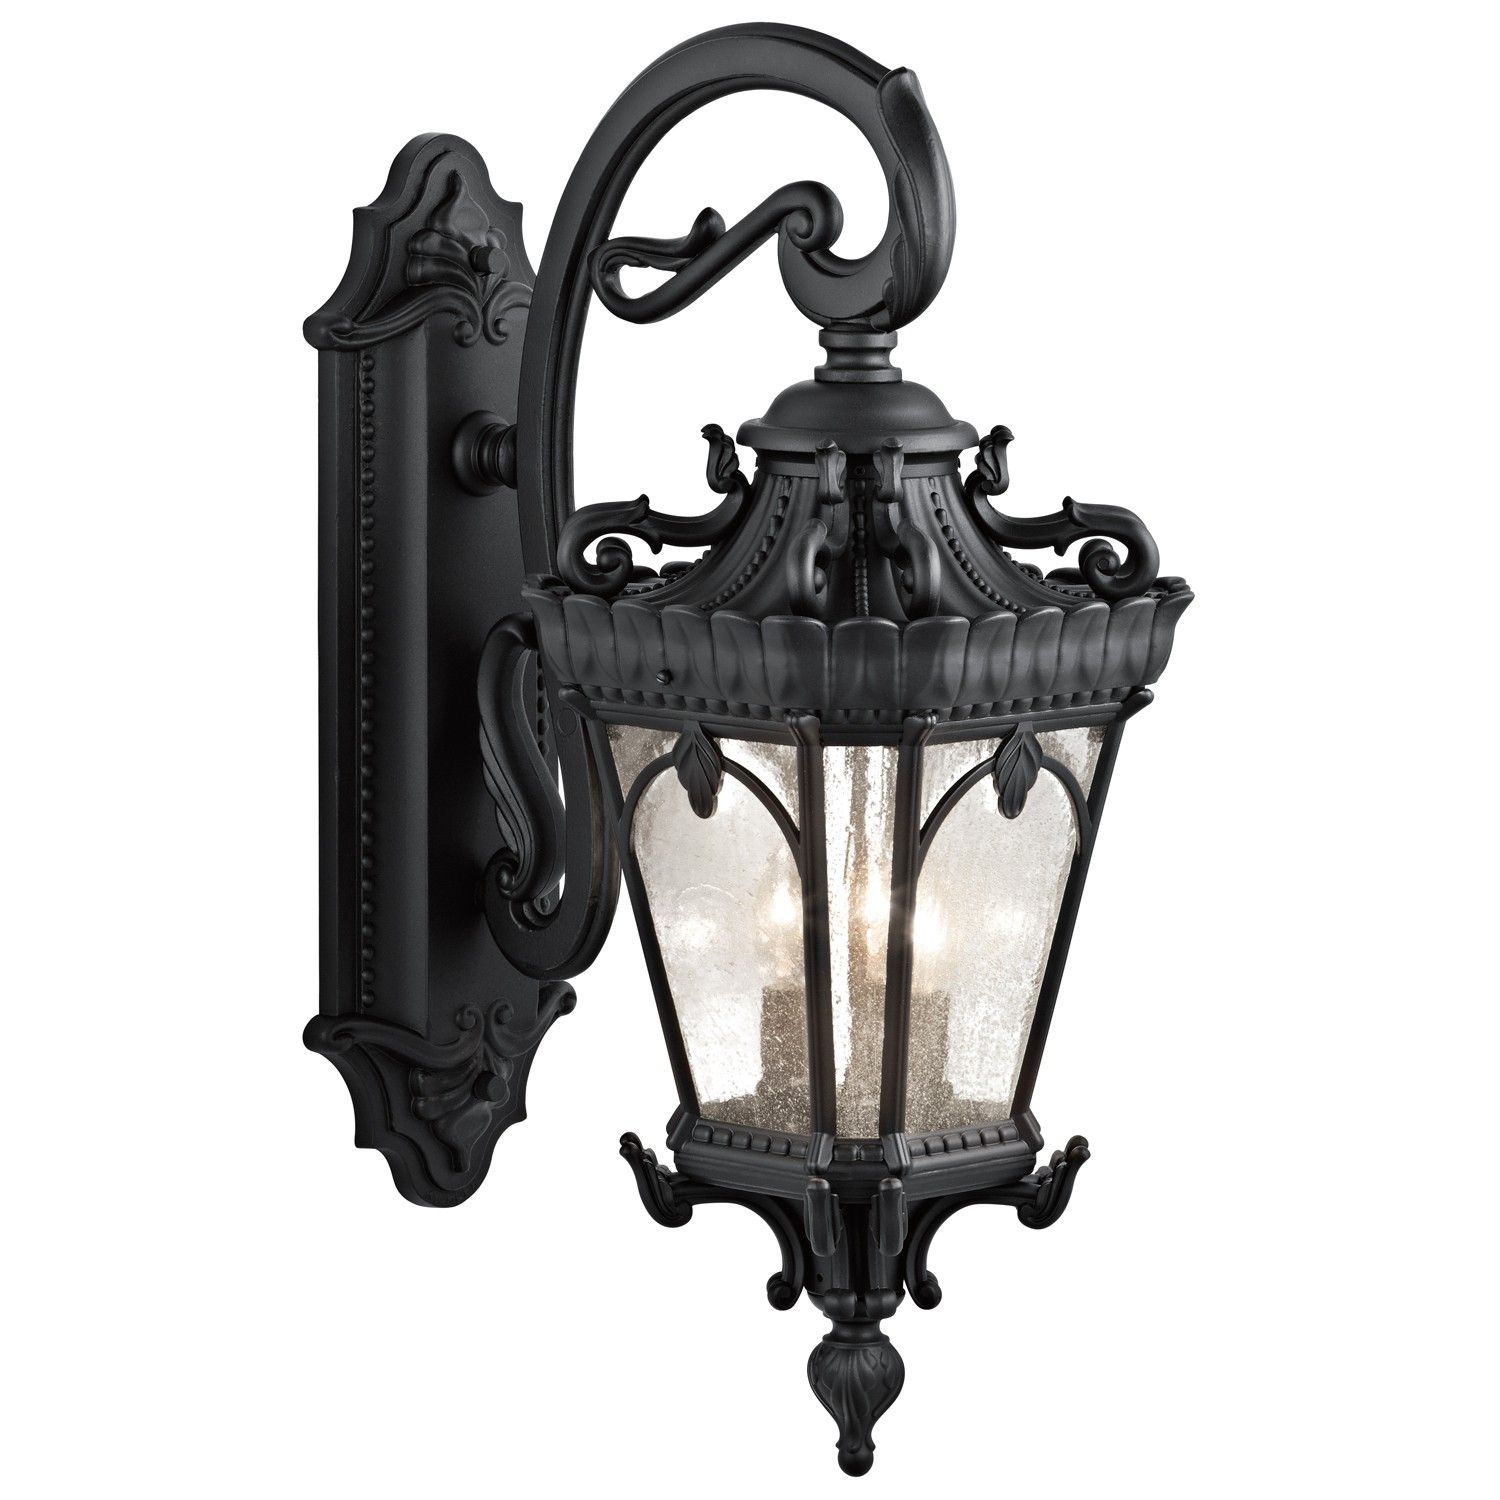 Kichler bkt light black outdoor wall lights lighting